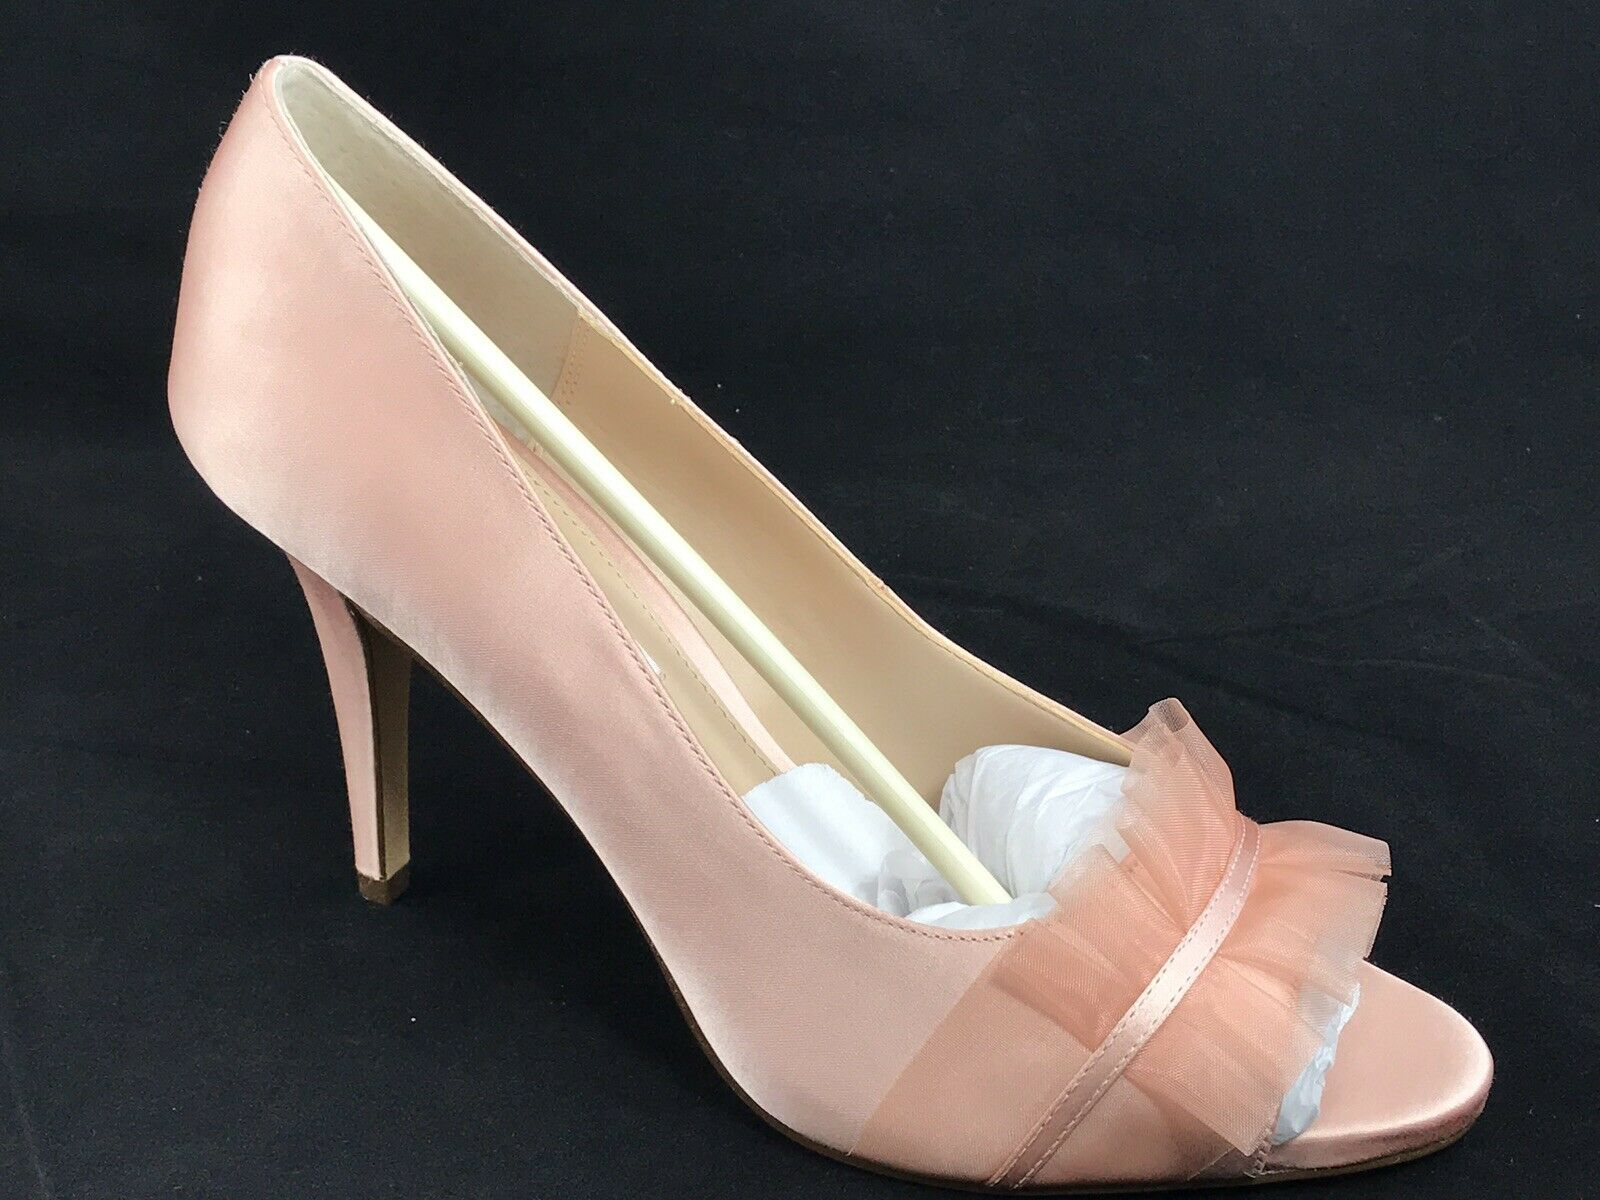 Nina New York Raizel Peep Toe Wedding Pump Heel Size 9.5 M bluesh NEW